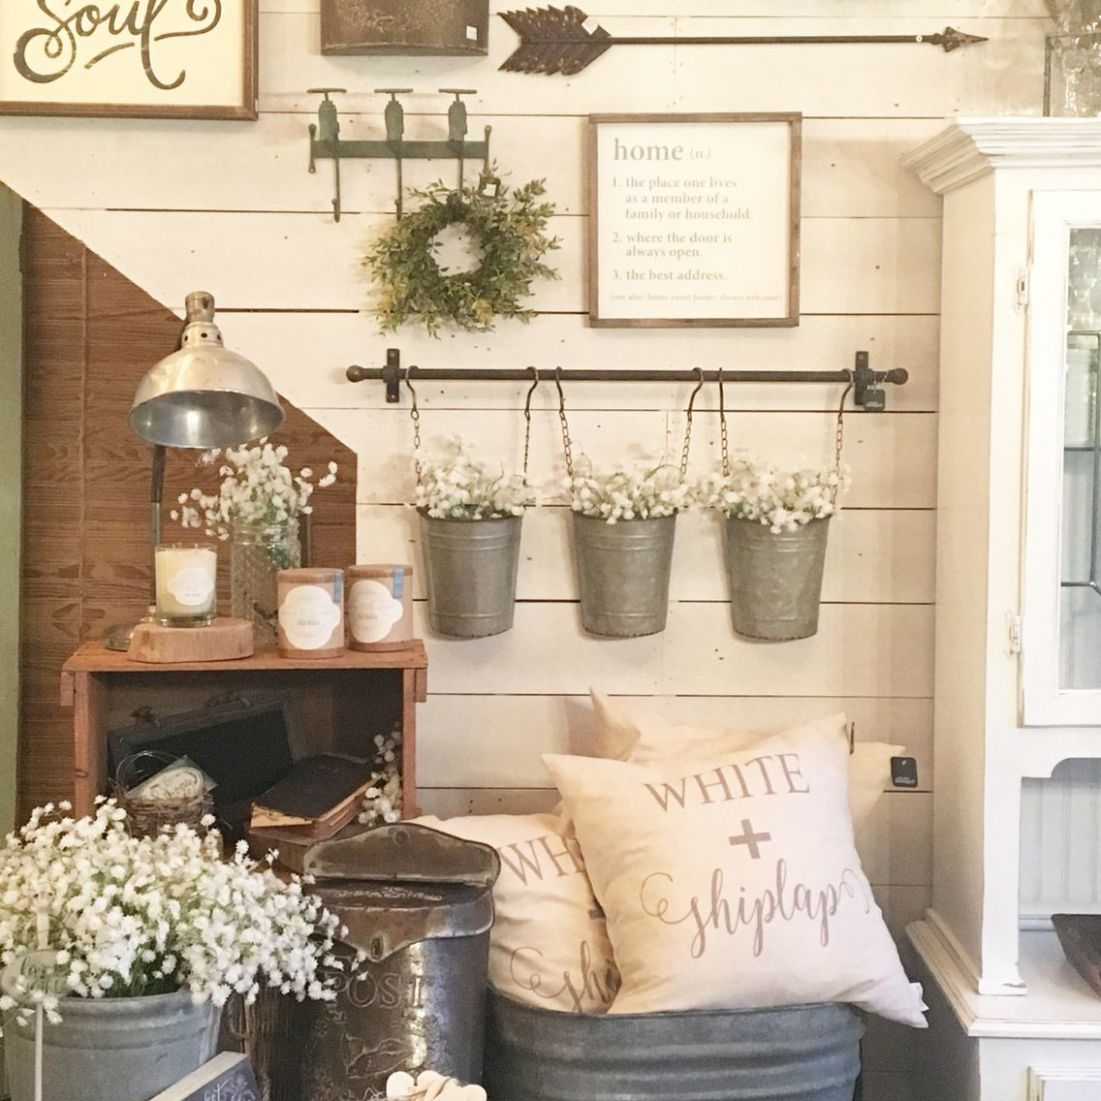 8 Rustic Wall Decor Ideas to Turn Shabby into Fabulous ..